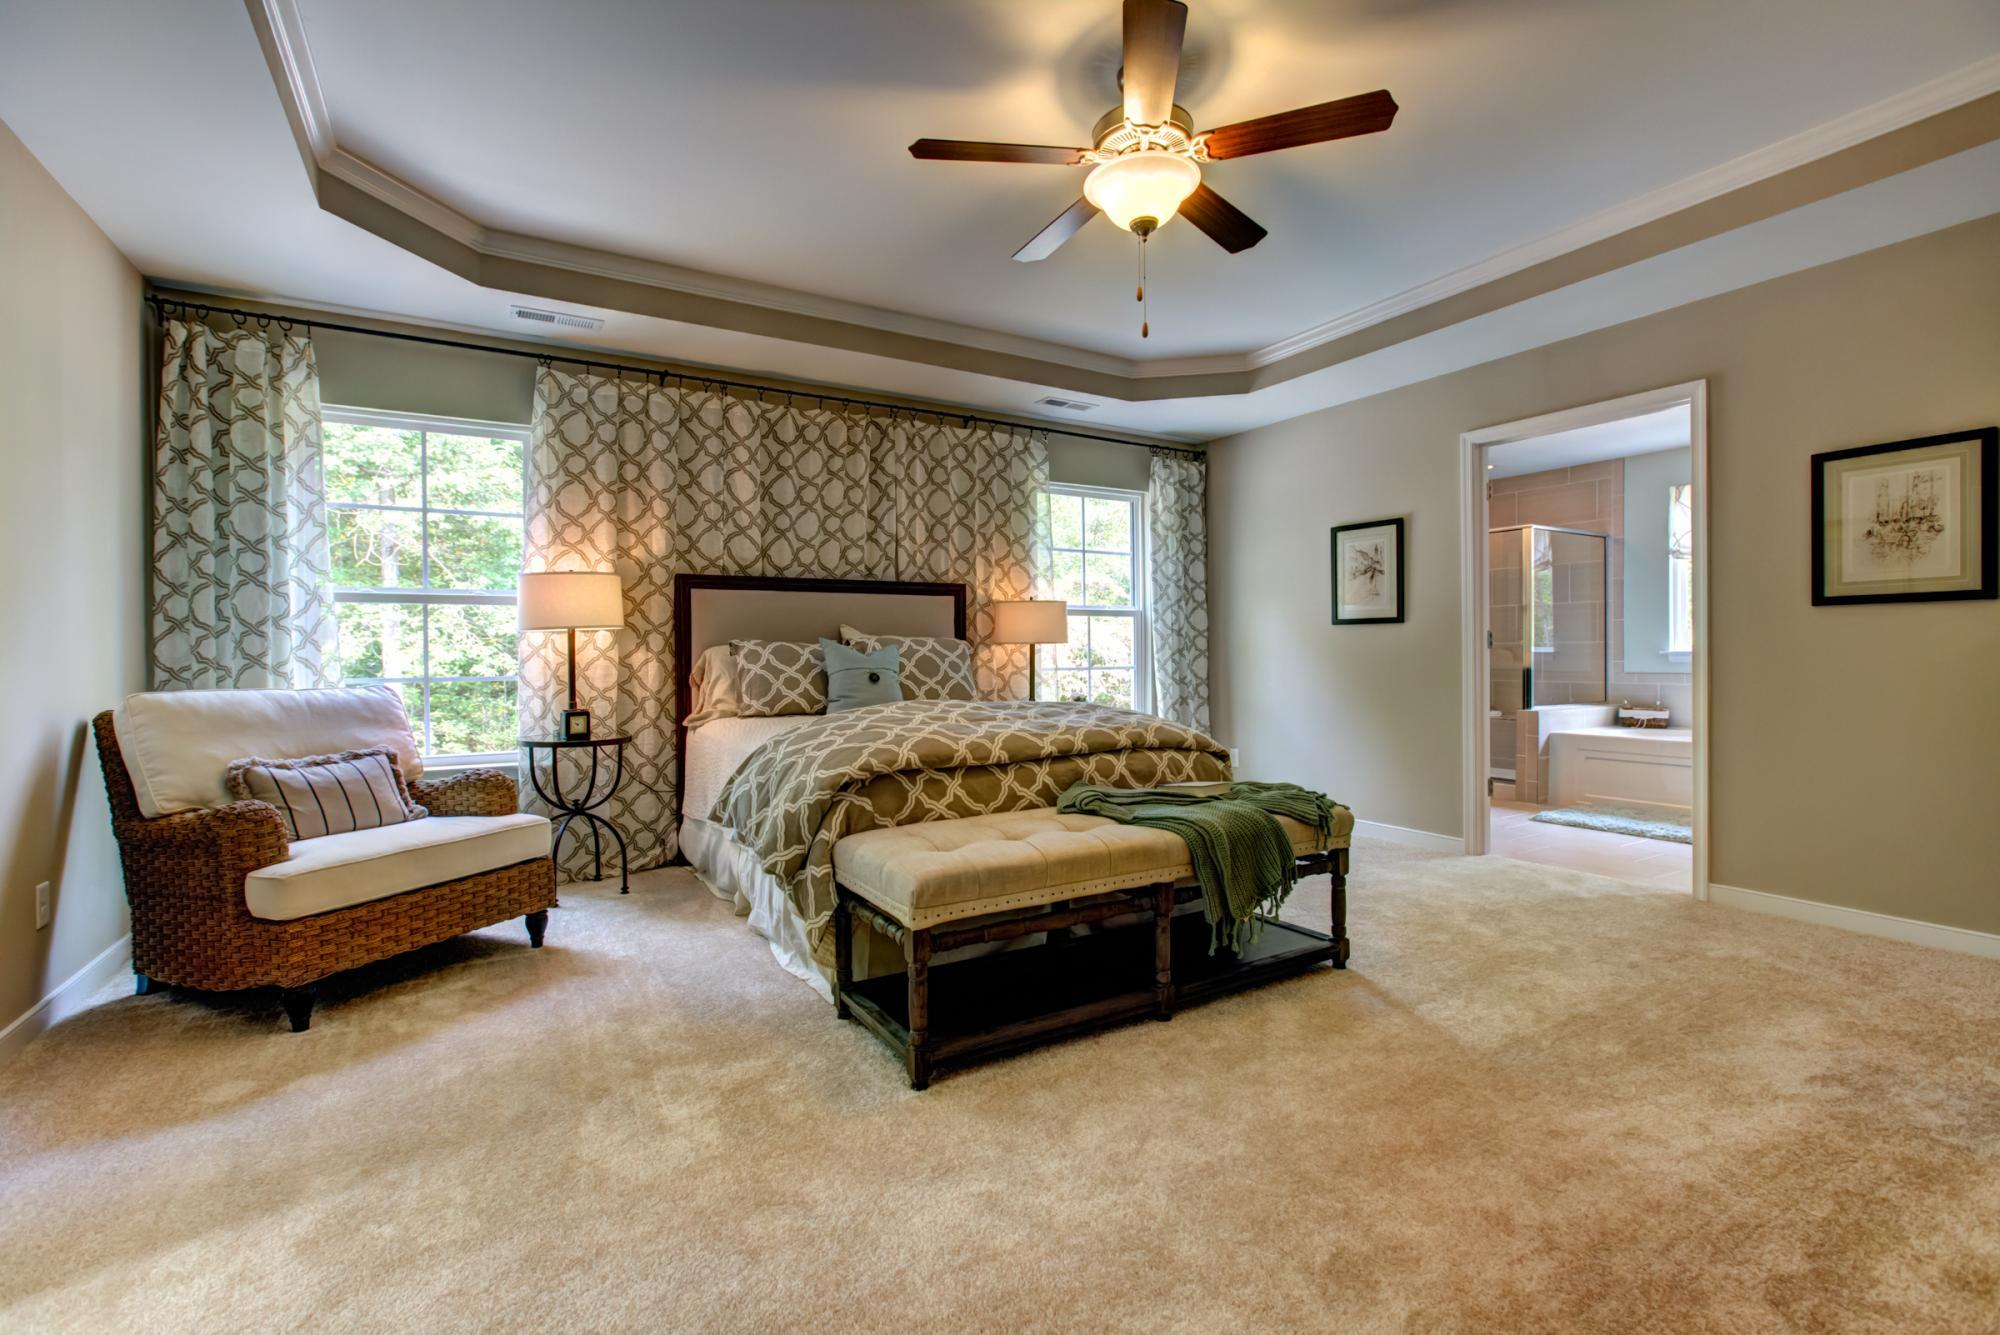 Bedroom featured in the Brookshire By Main Street Homes in Richmond-Petersburg, VA